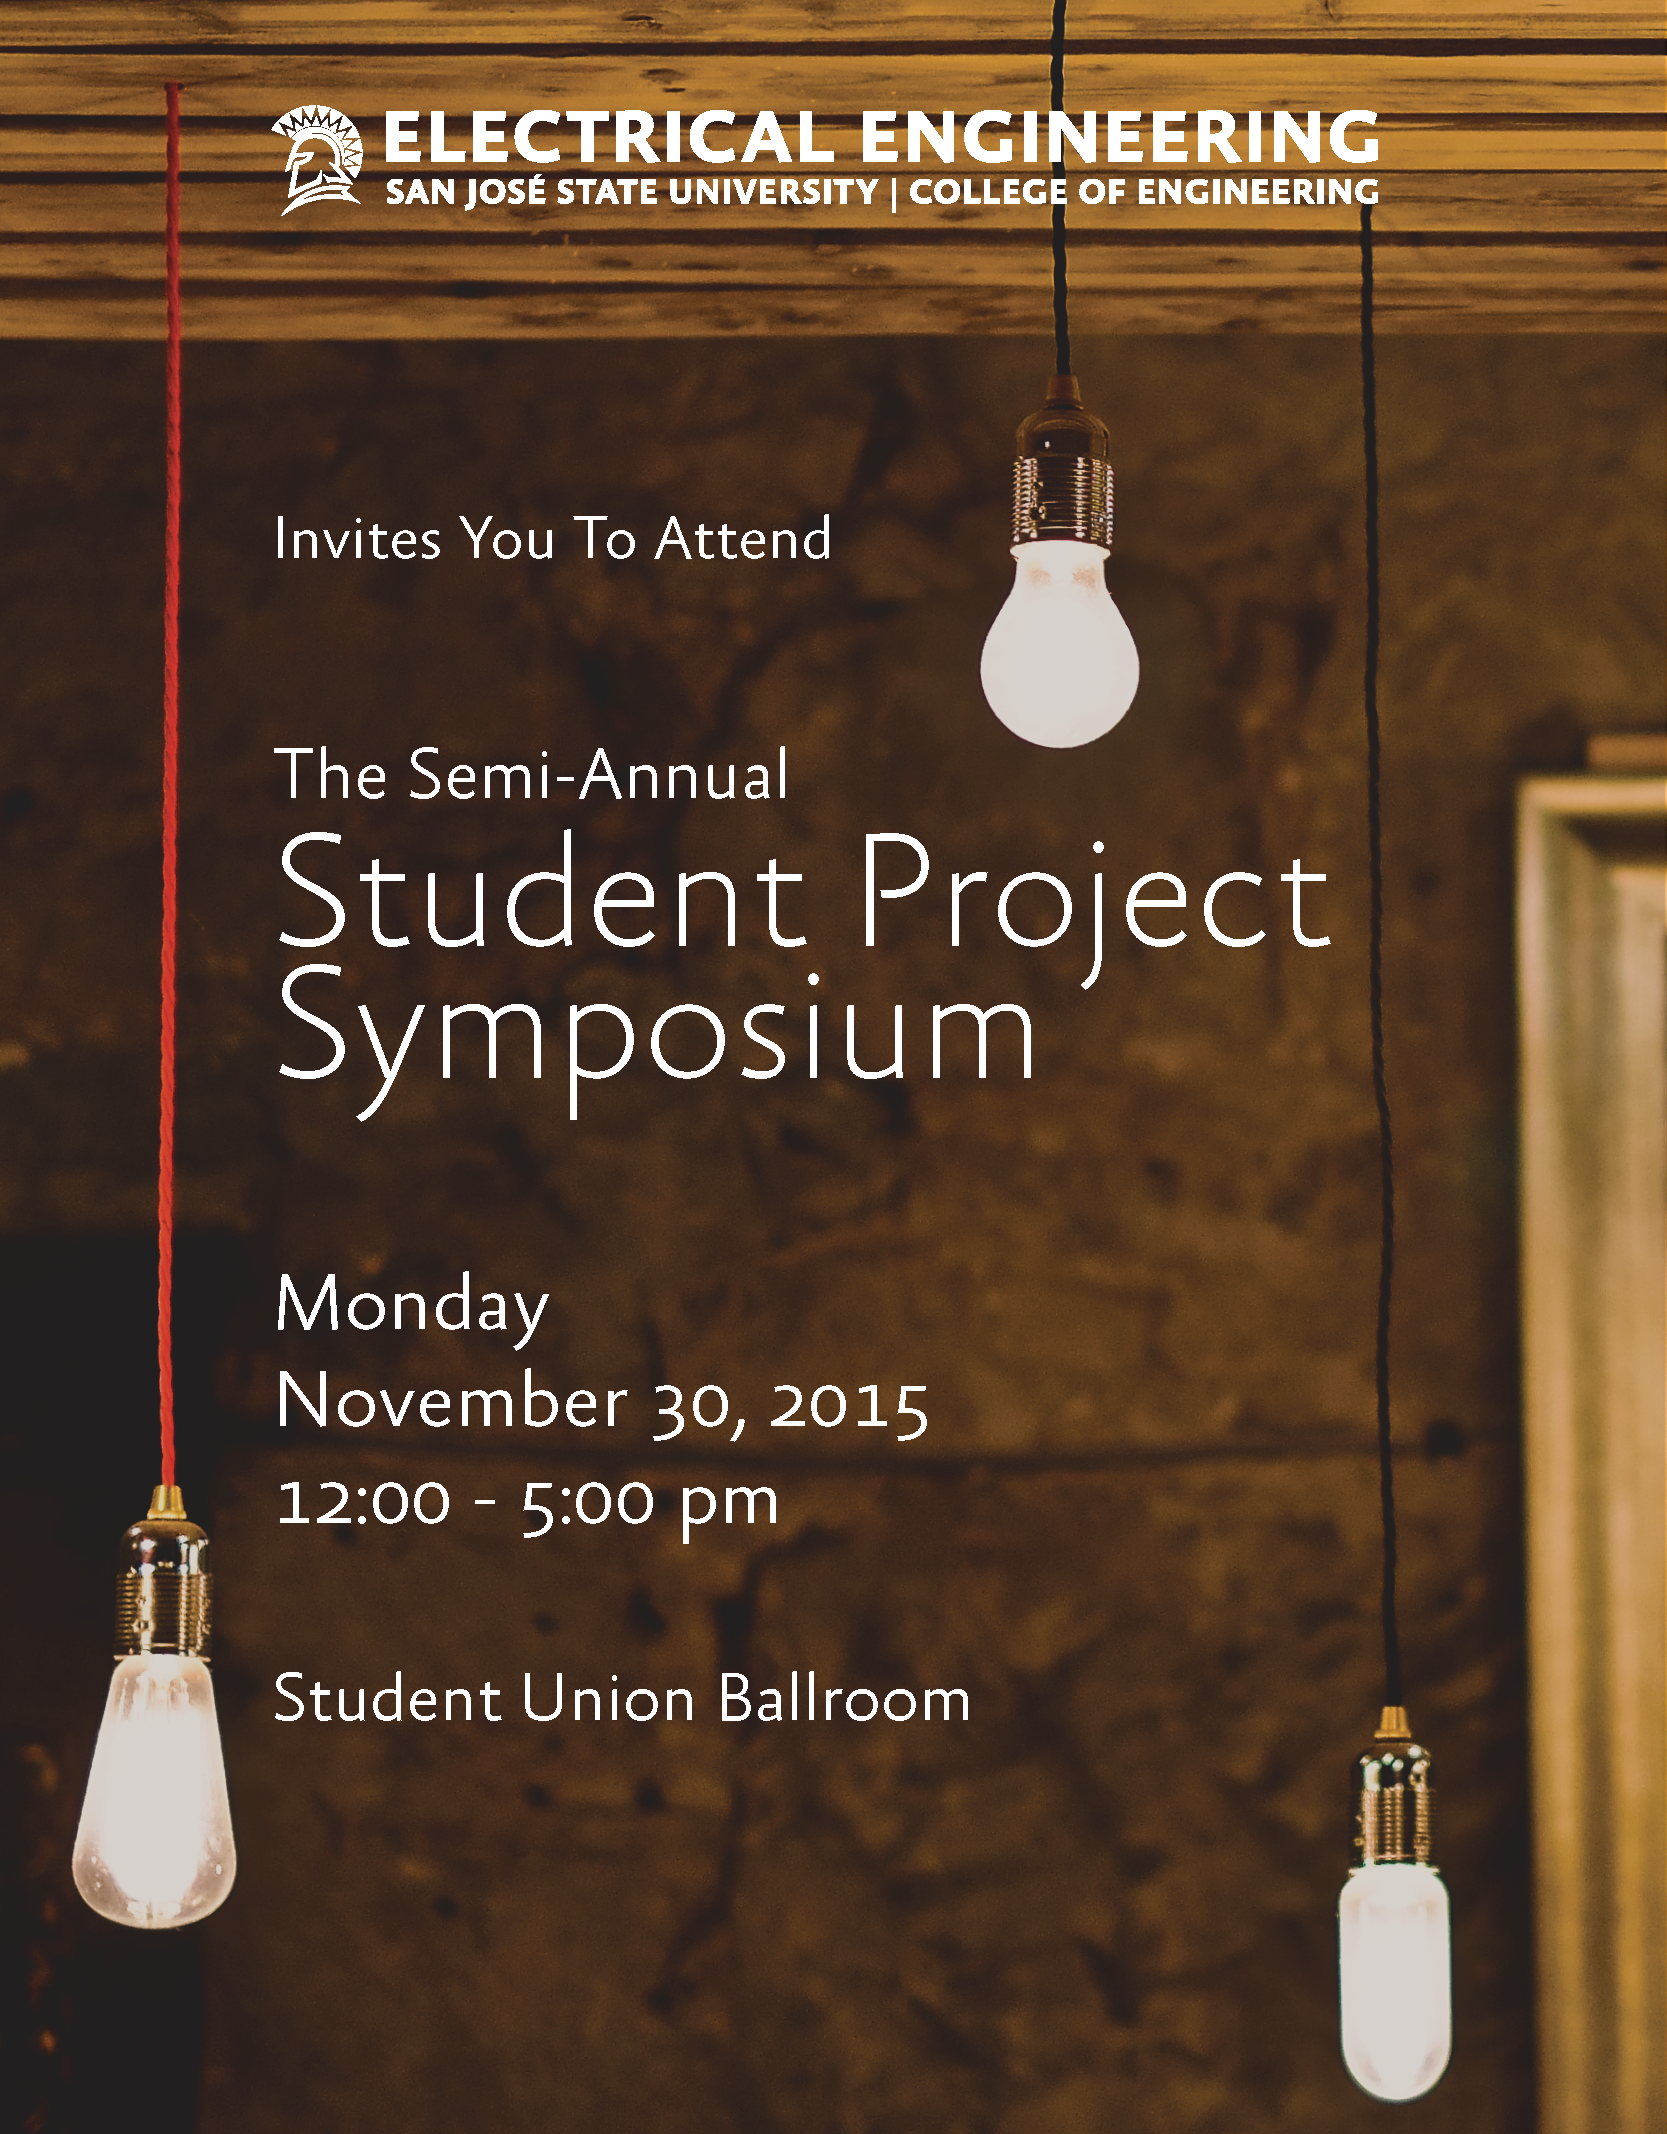 flyer-symposium-fall-2015-8.5x11.png